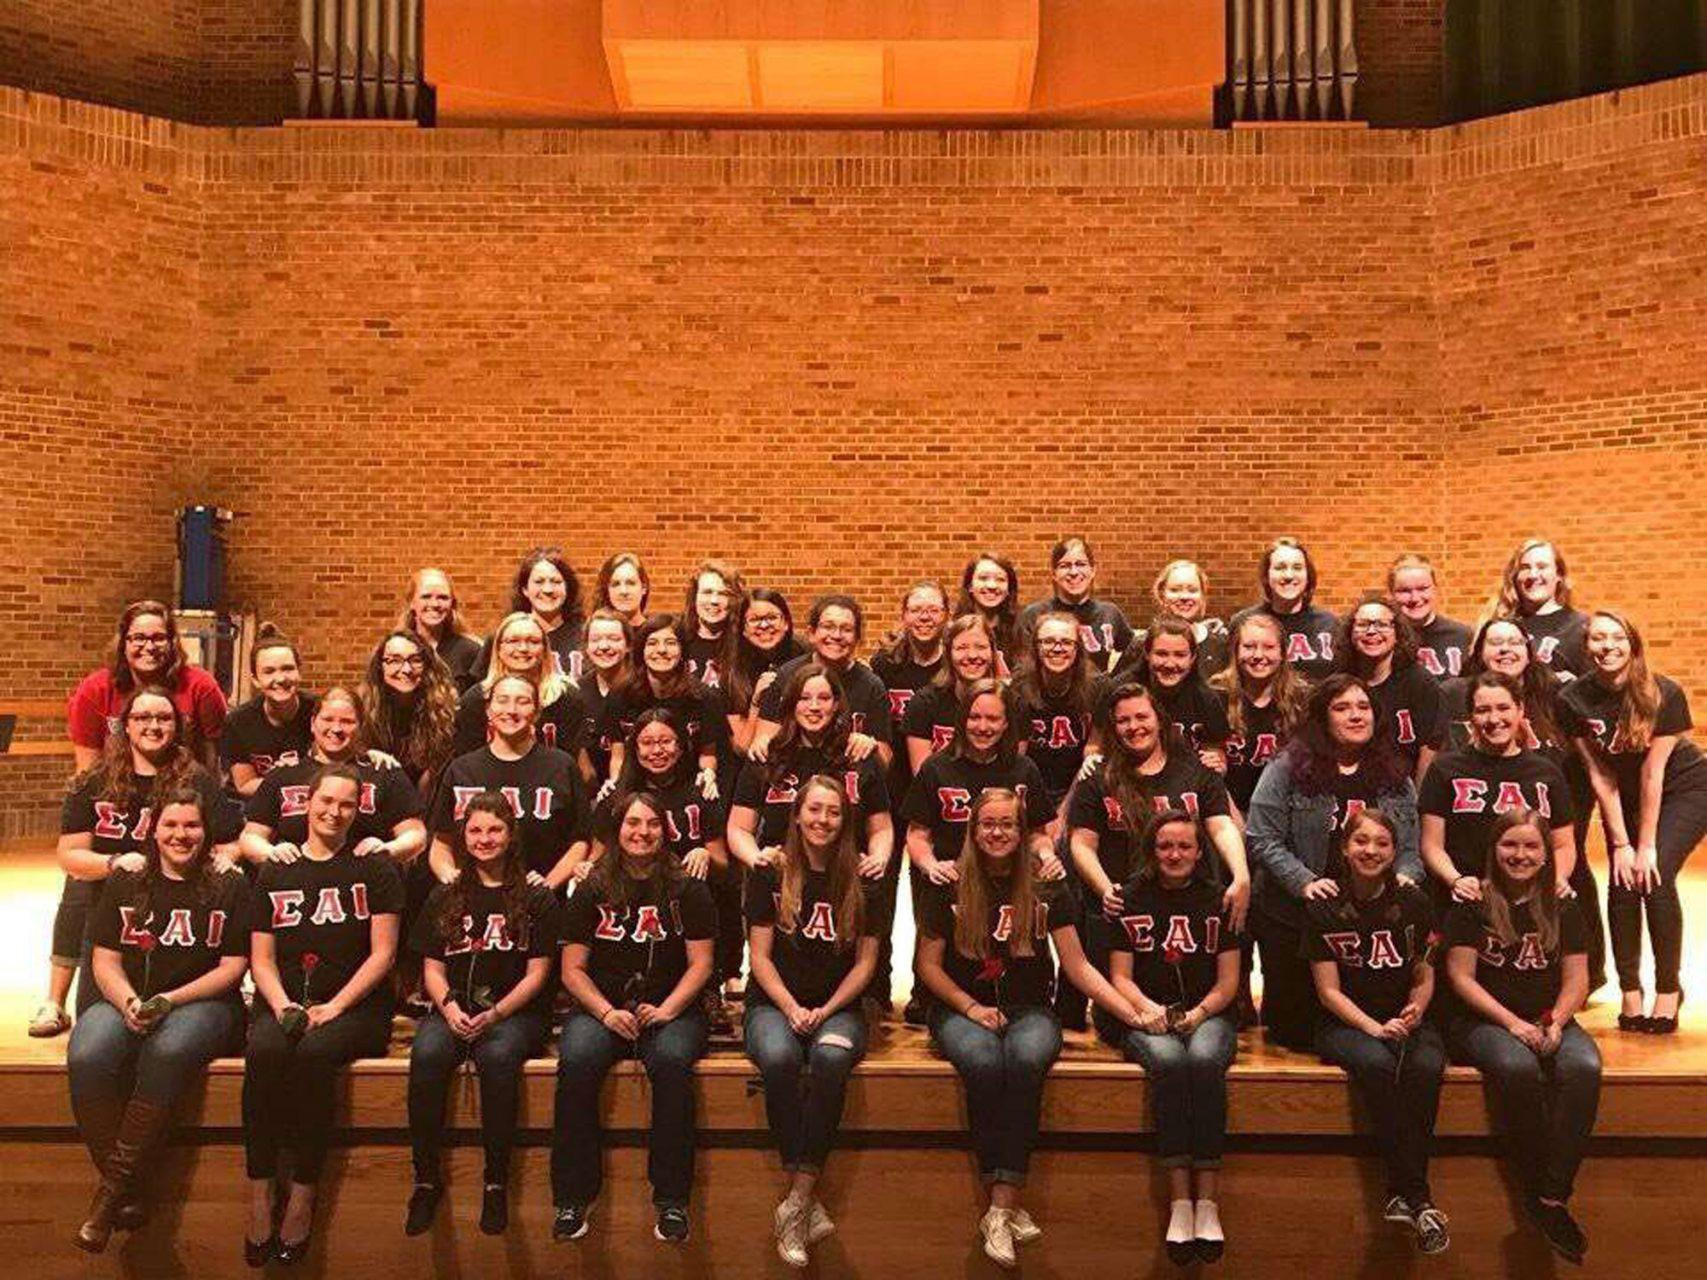 Sigma Alpha Iota (SAI) is the all-female music fraternity on campus that organizes receptions for faculty and students as well as breakfasts for staff at the Hayes School of Music.